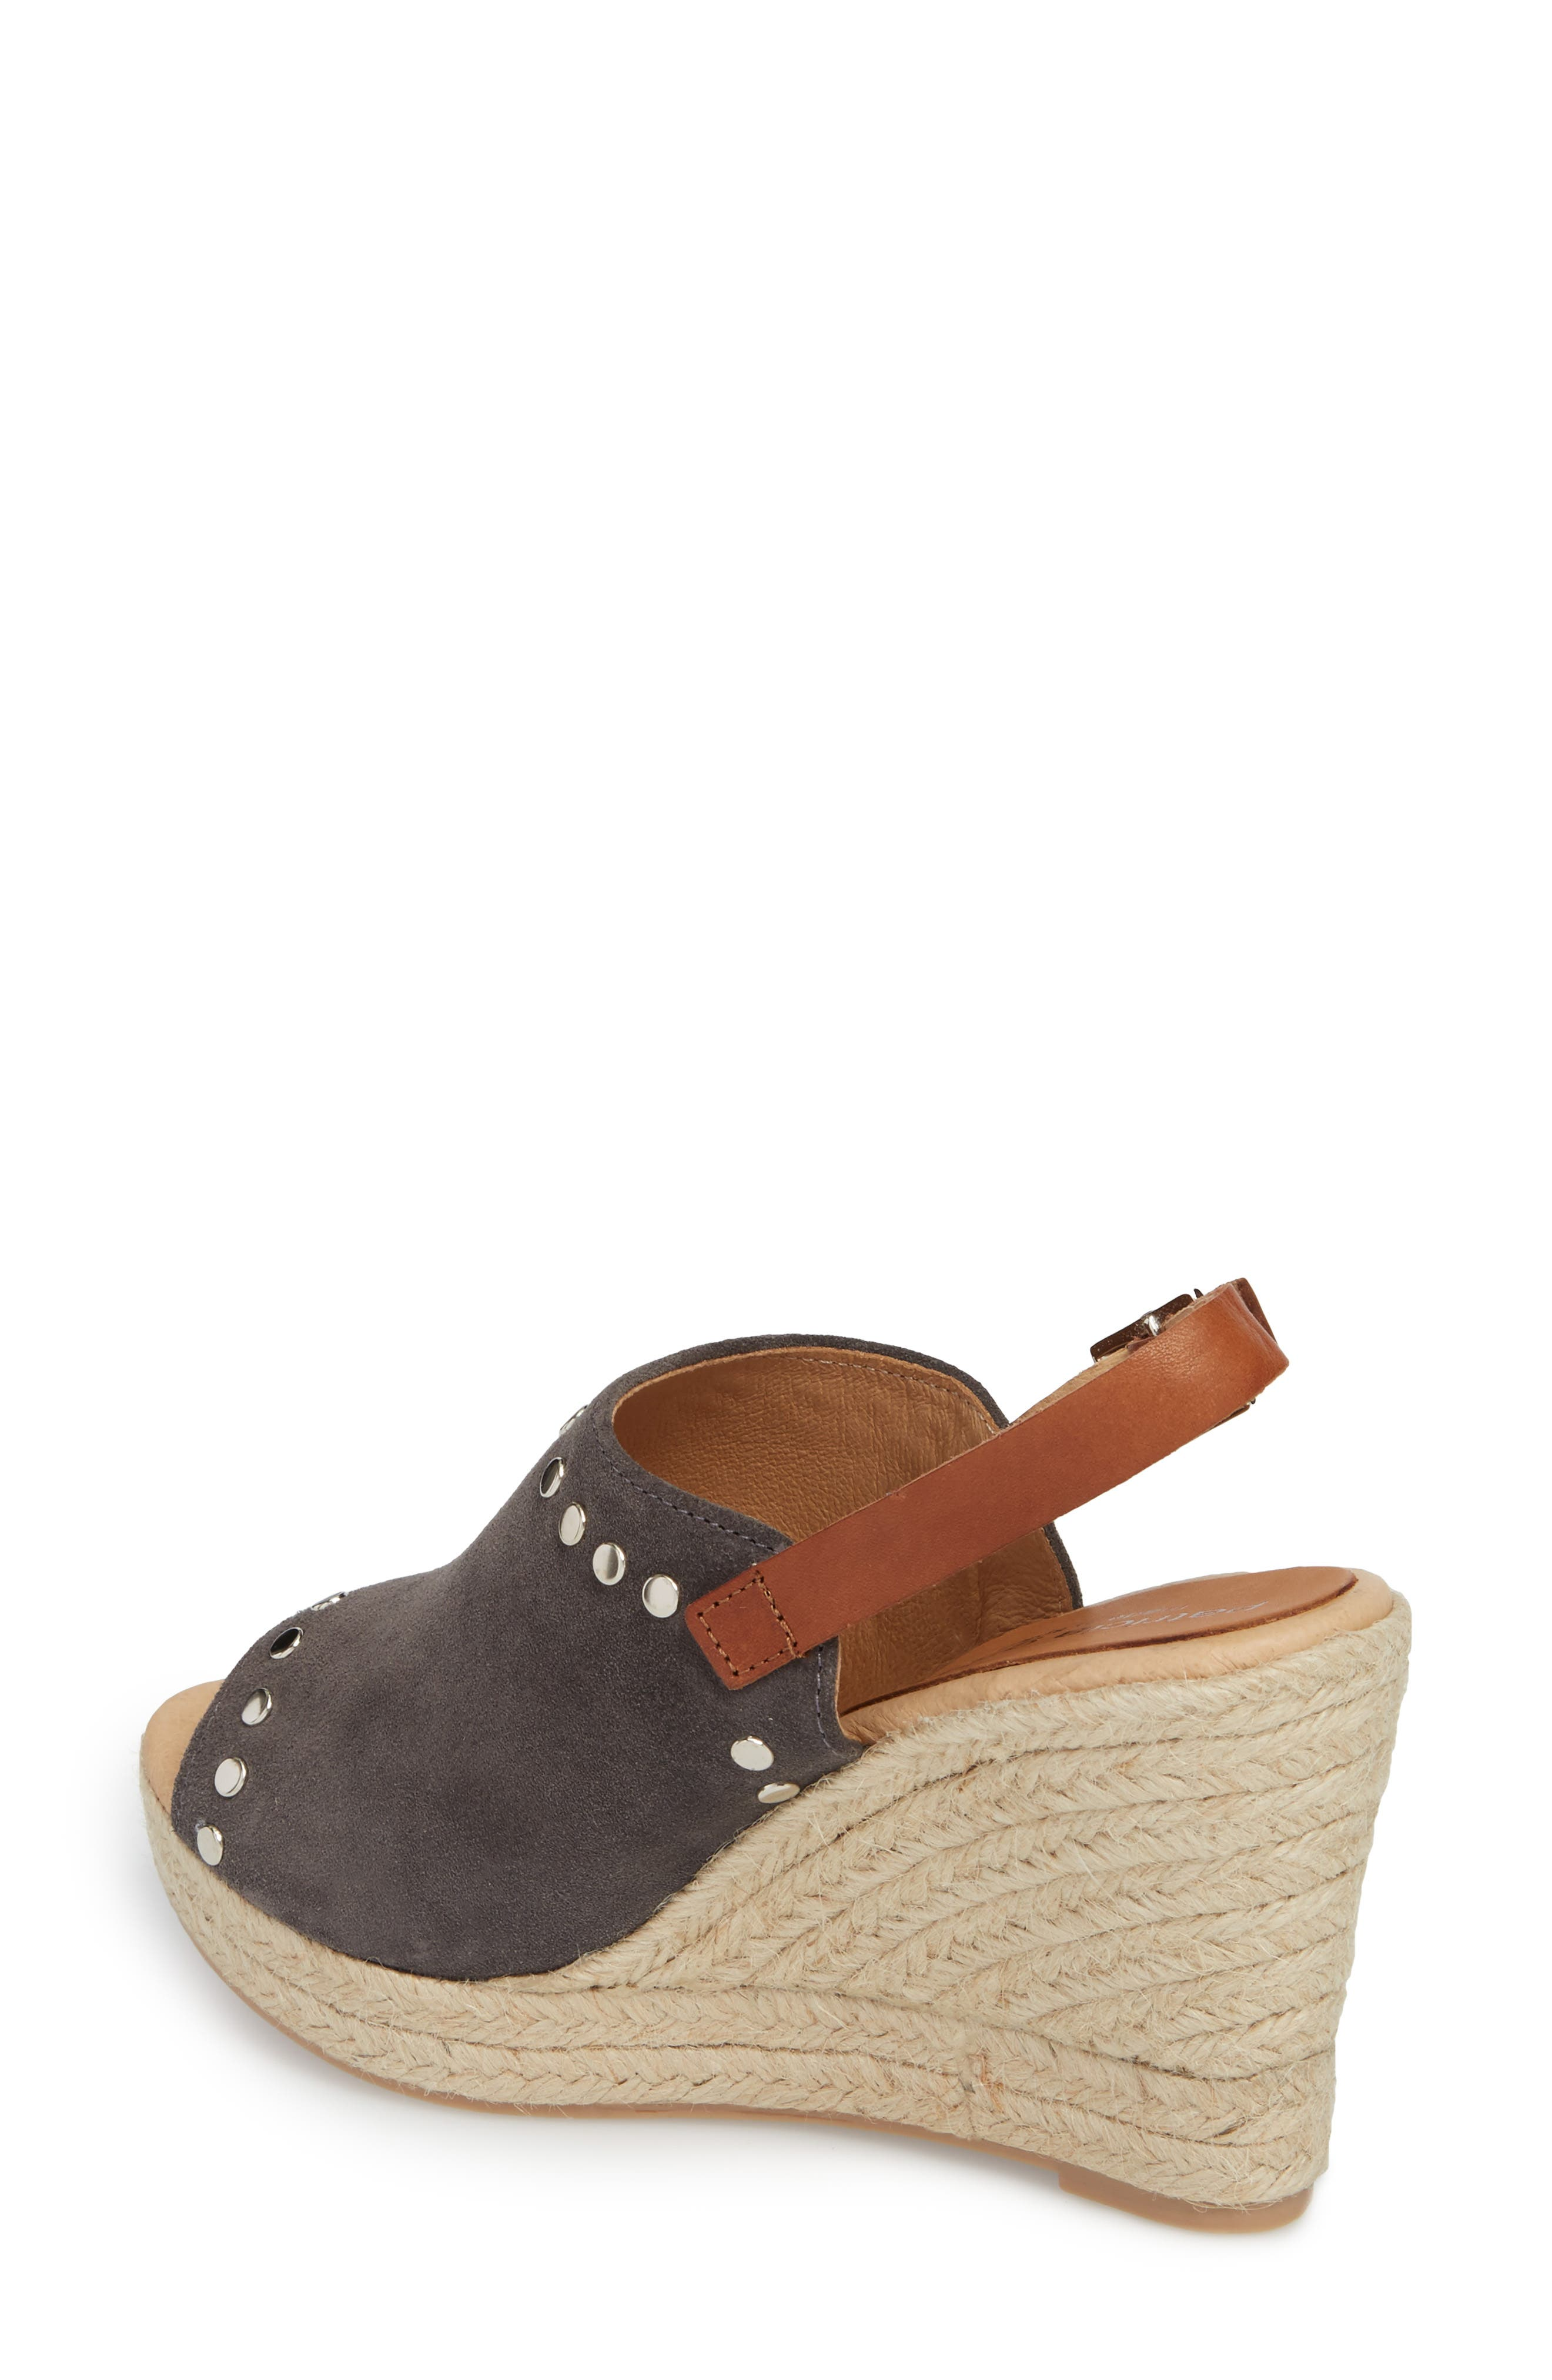 Rockstar Espadrille Wedge Sandal,                             Alternate thumbnail 2, color,                             CHARCOAL SUEDE